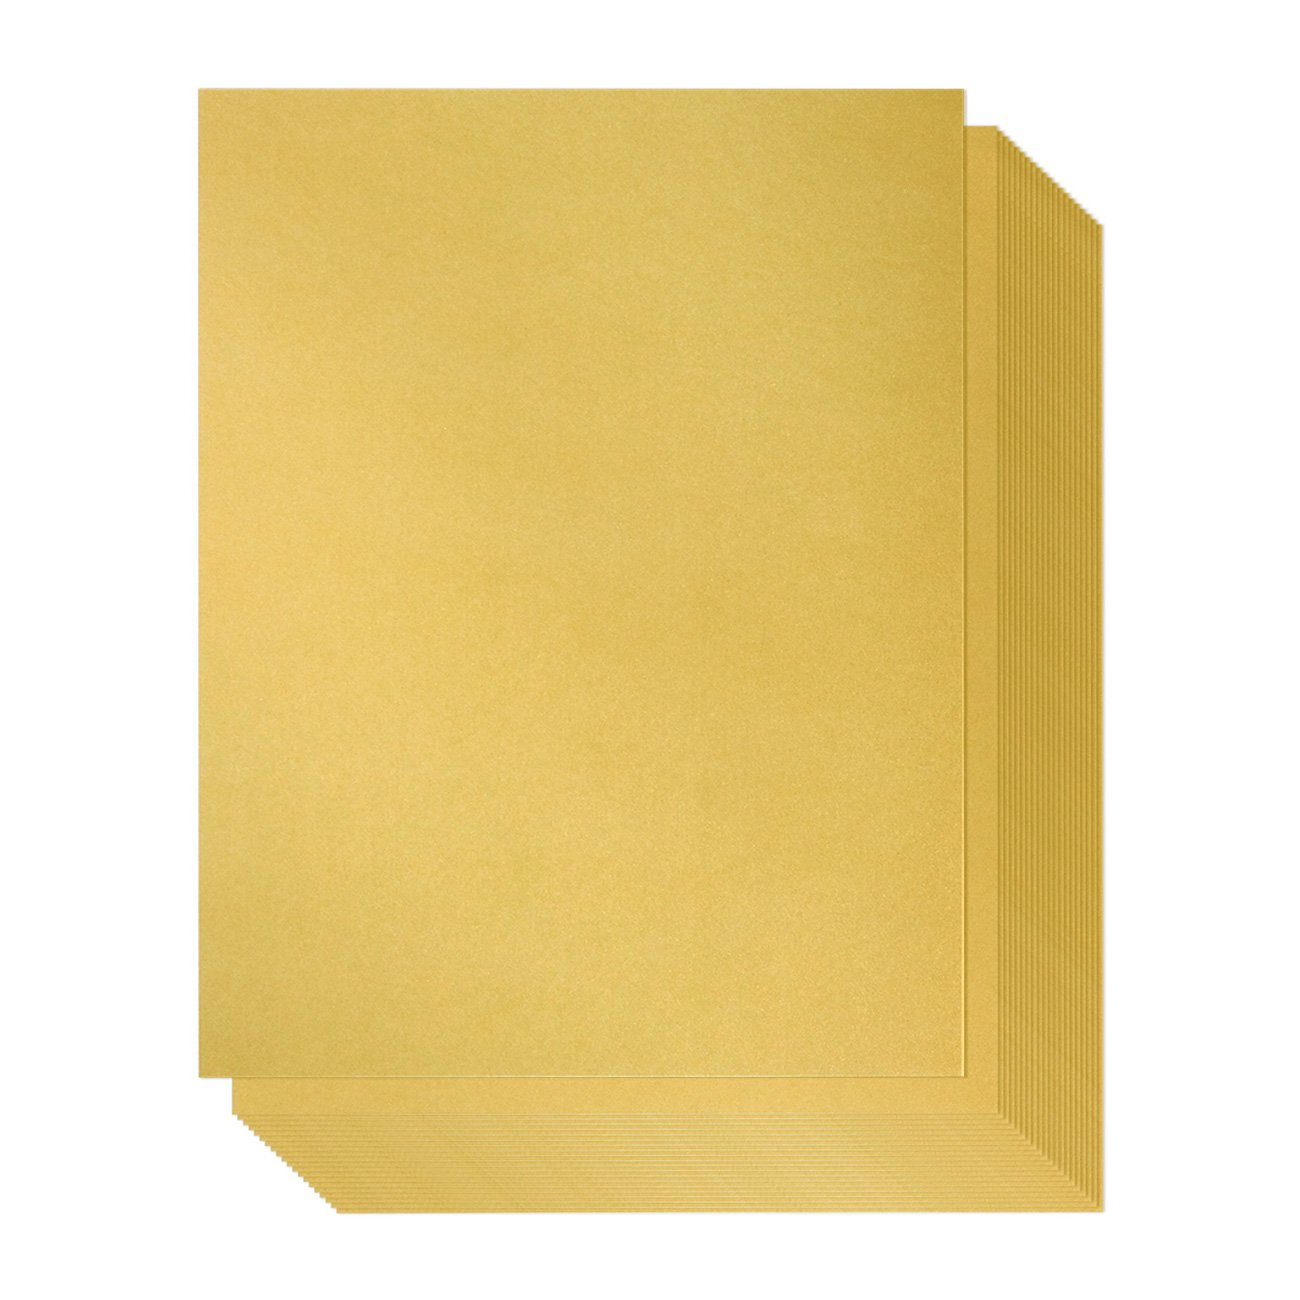 Shimmer Paper - 96 Pack-Gold Metallic Paper, Double Sided, Laser Printer Friendly - Perfect for Weddings, Baby Showers, Birthdays, Craft Use, Letter Size Sheets, 8.7 x 0.03 x 11 Inches by Best Paper Greetings